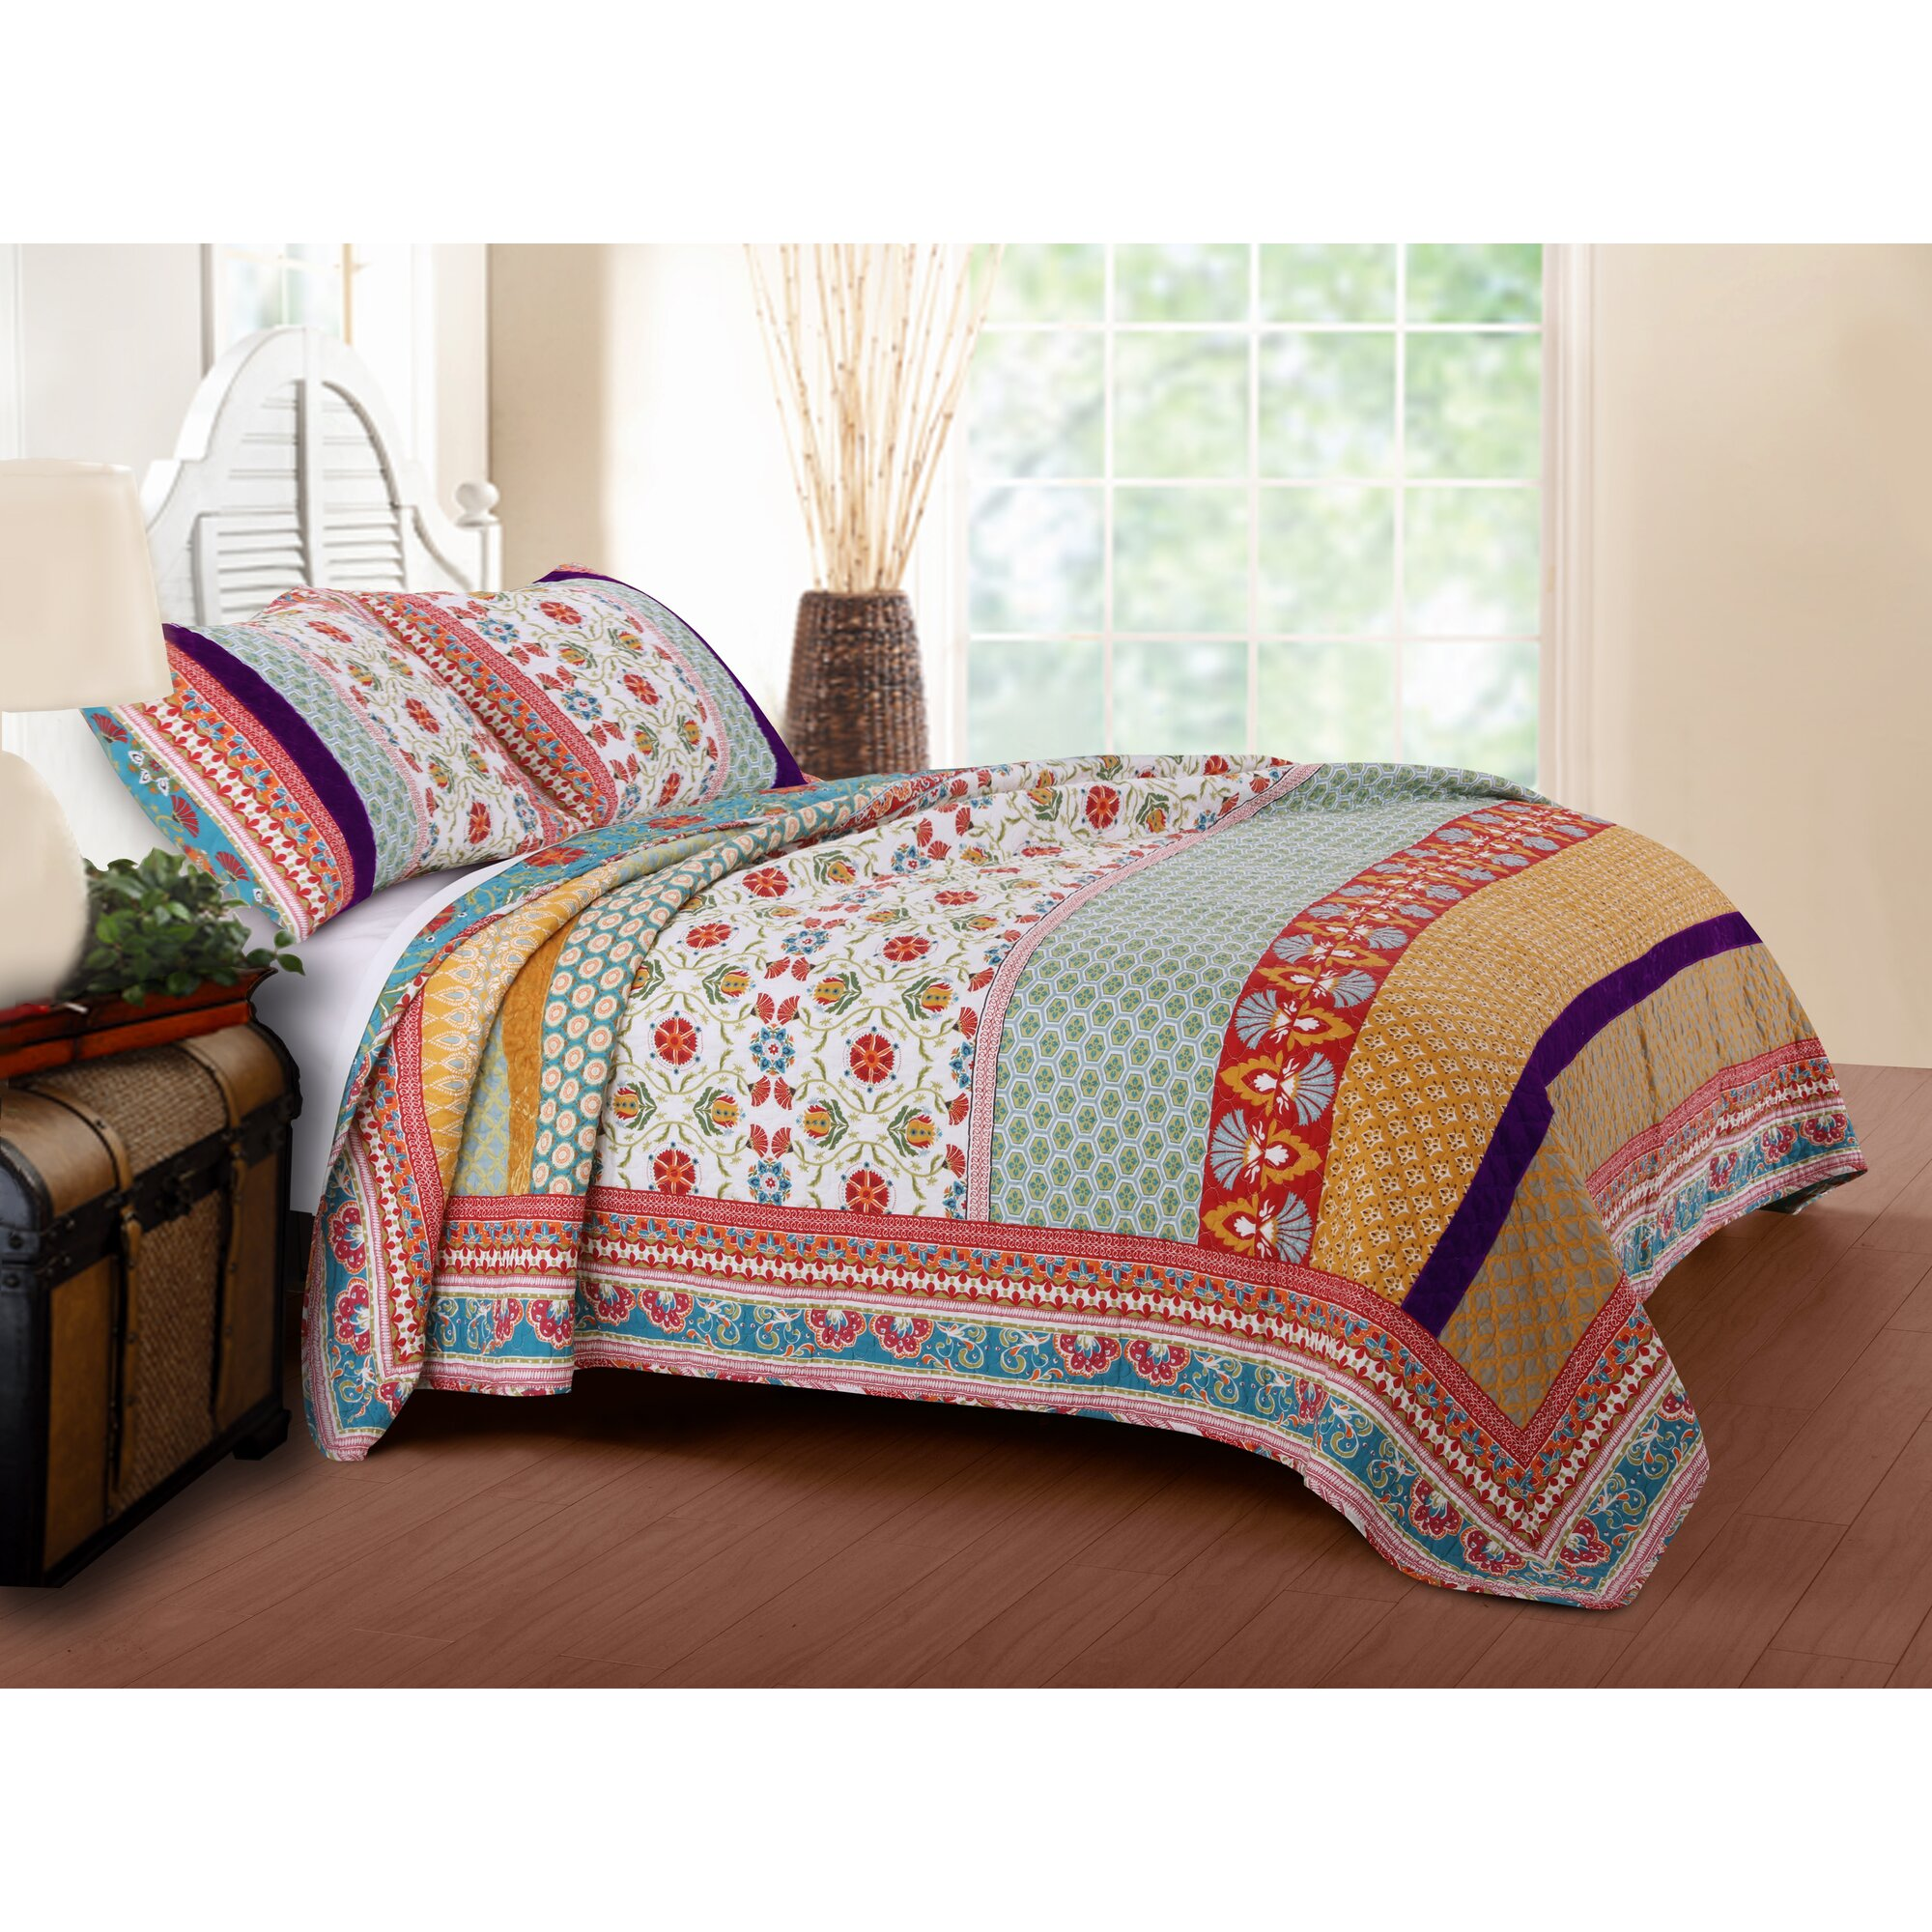 Bed sheet set with quilt - Thalia Reversible Quilt Set